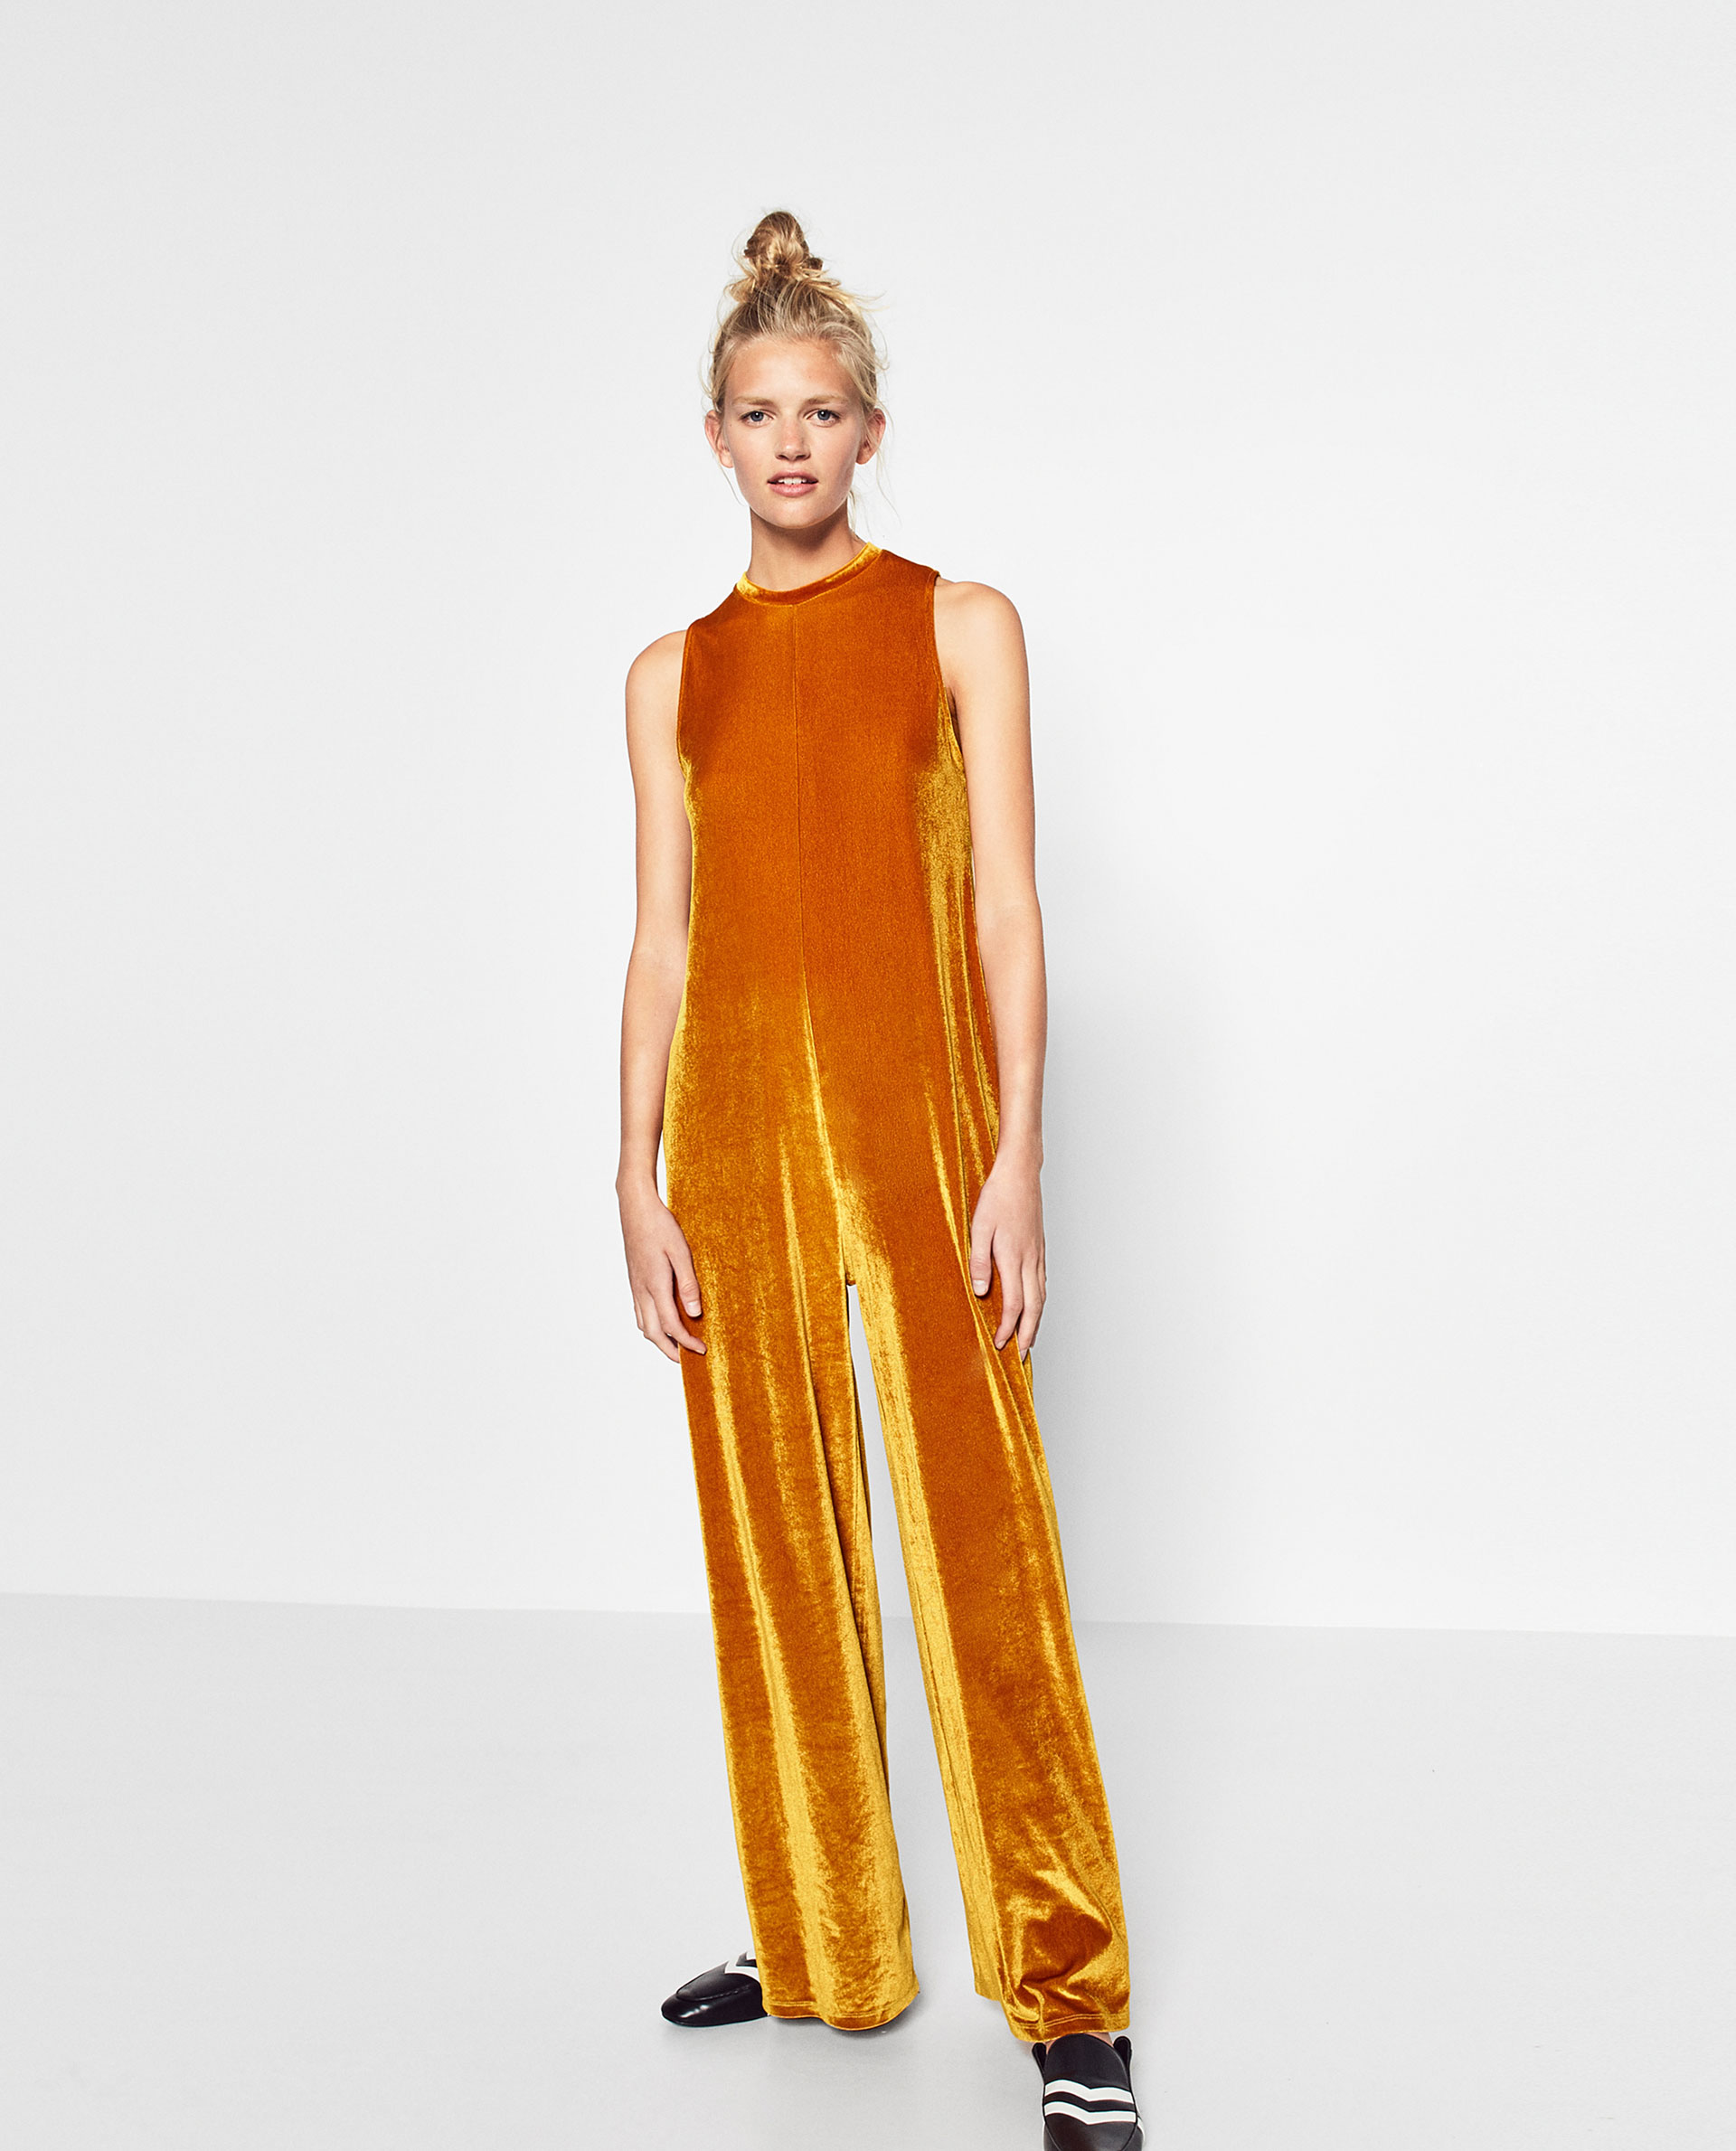 Zara - This is not for the faint hearted, but we think it's Rad.